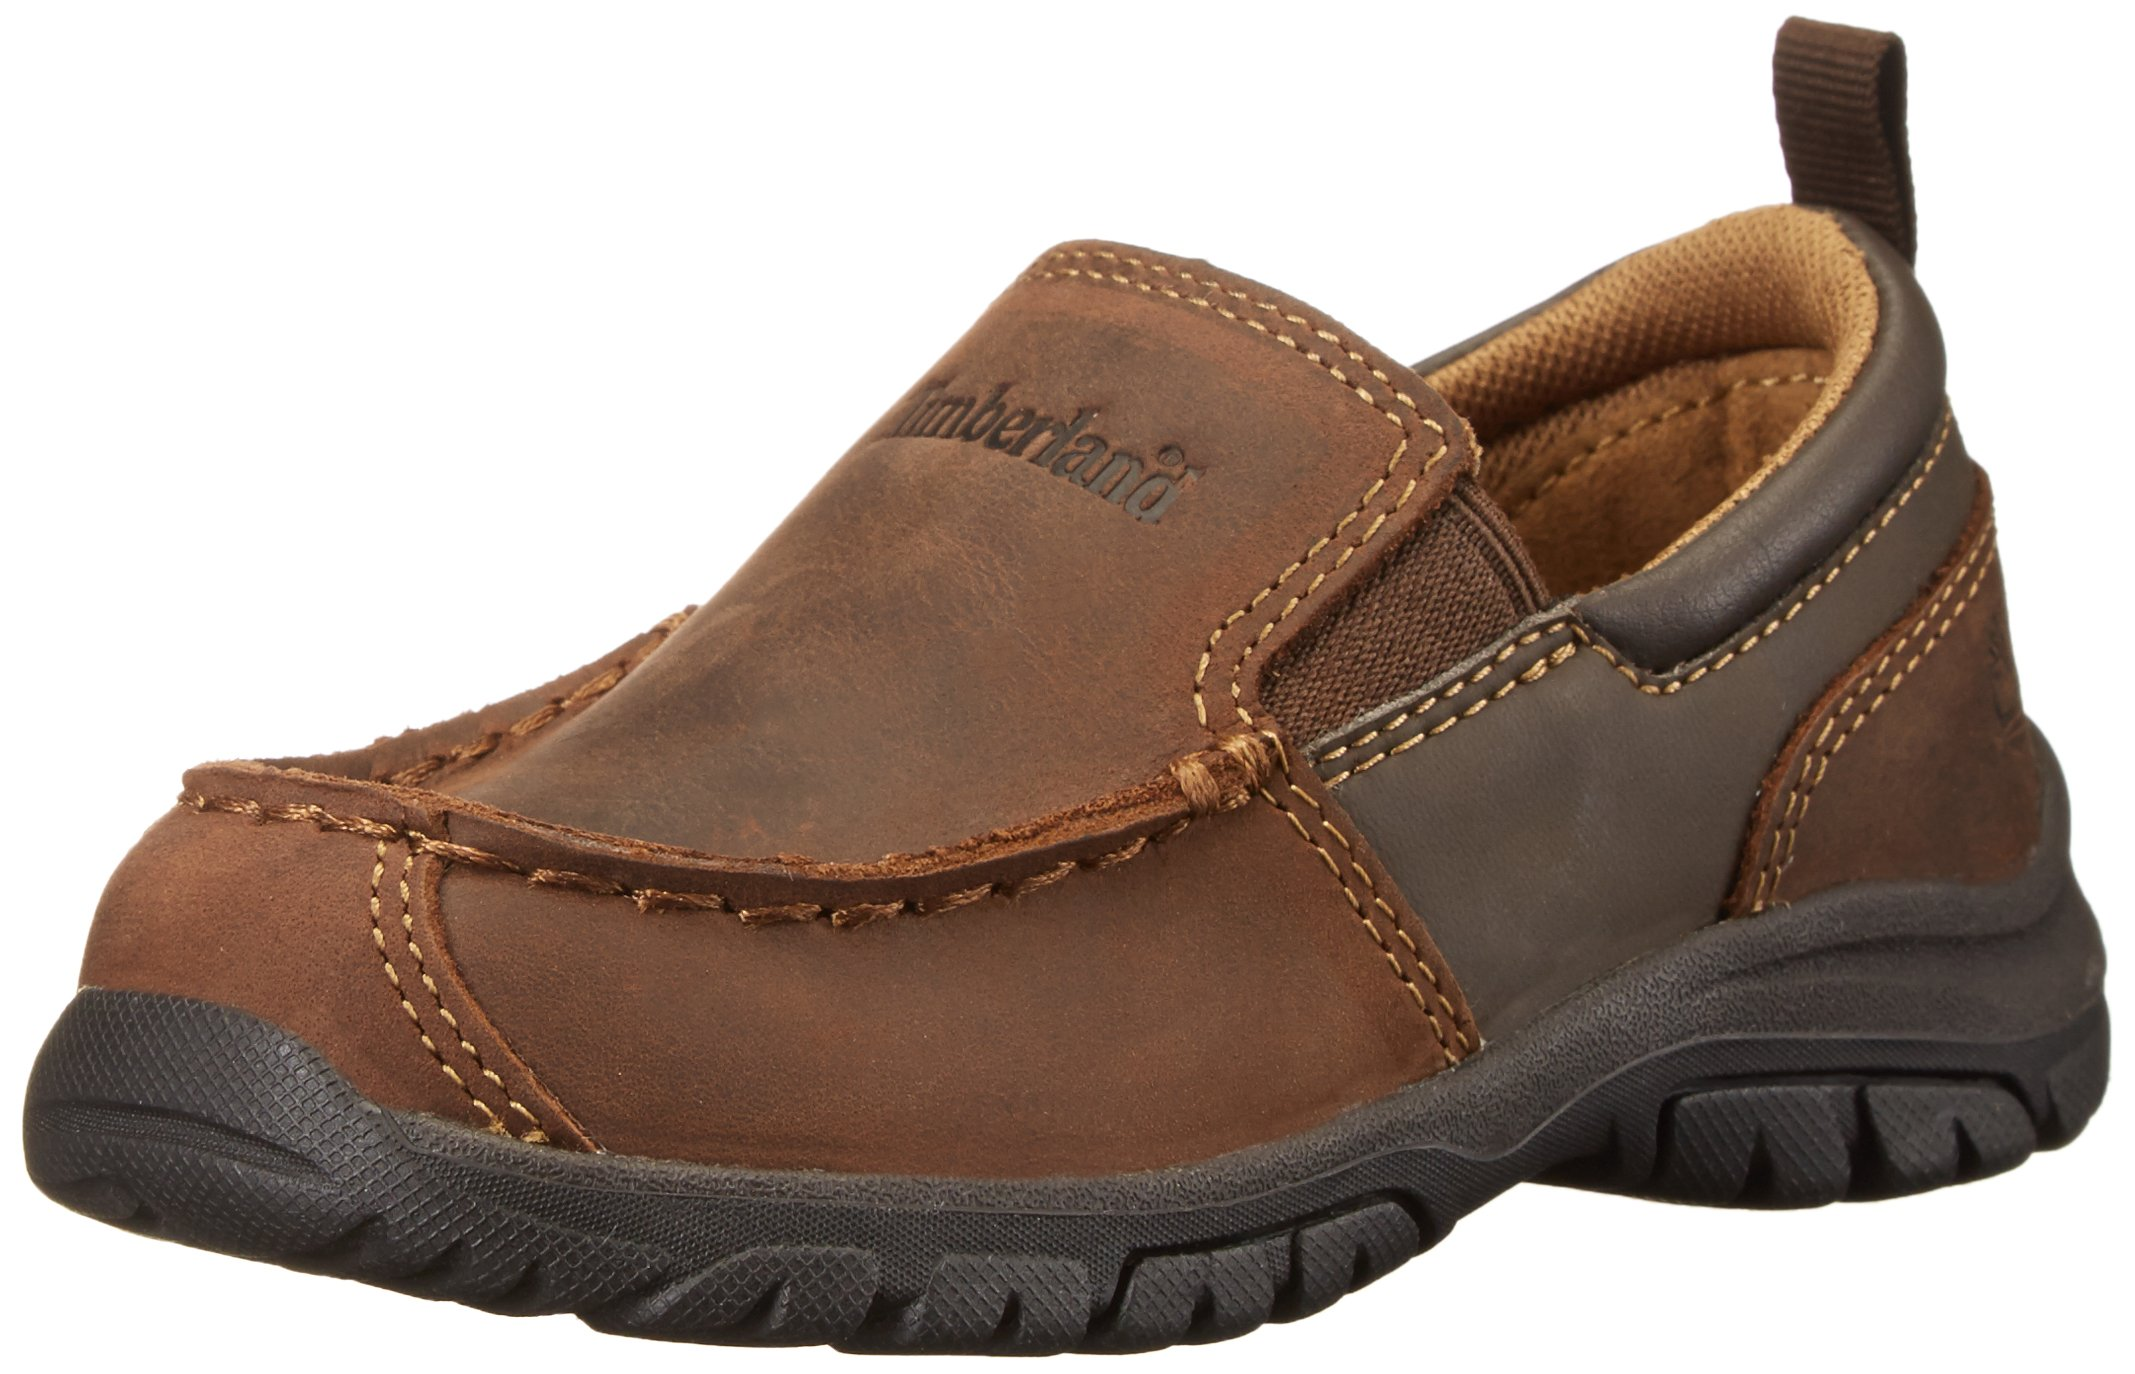 Timberland Discovery Pass Moc Toe Moc Toe Slip-On (Toddler/Little Kid/Big Kid),Brown,13 M US Little Kid